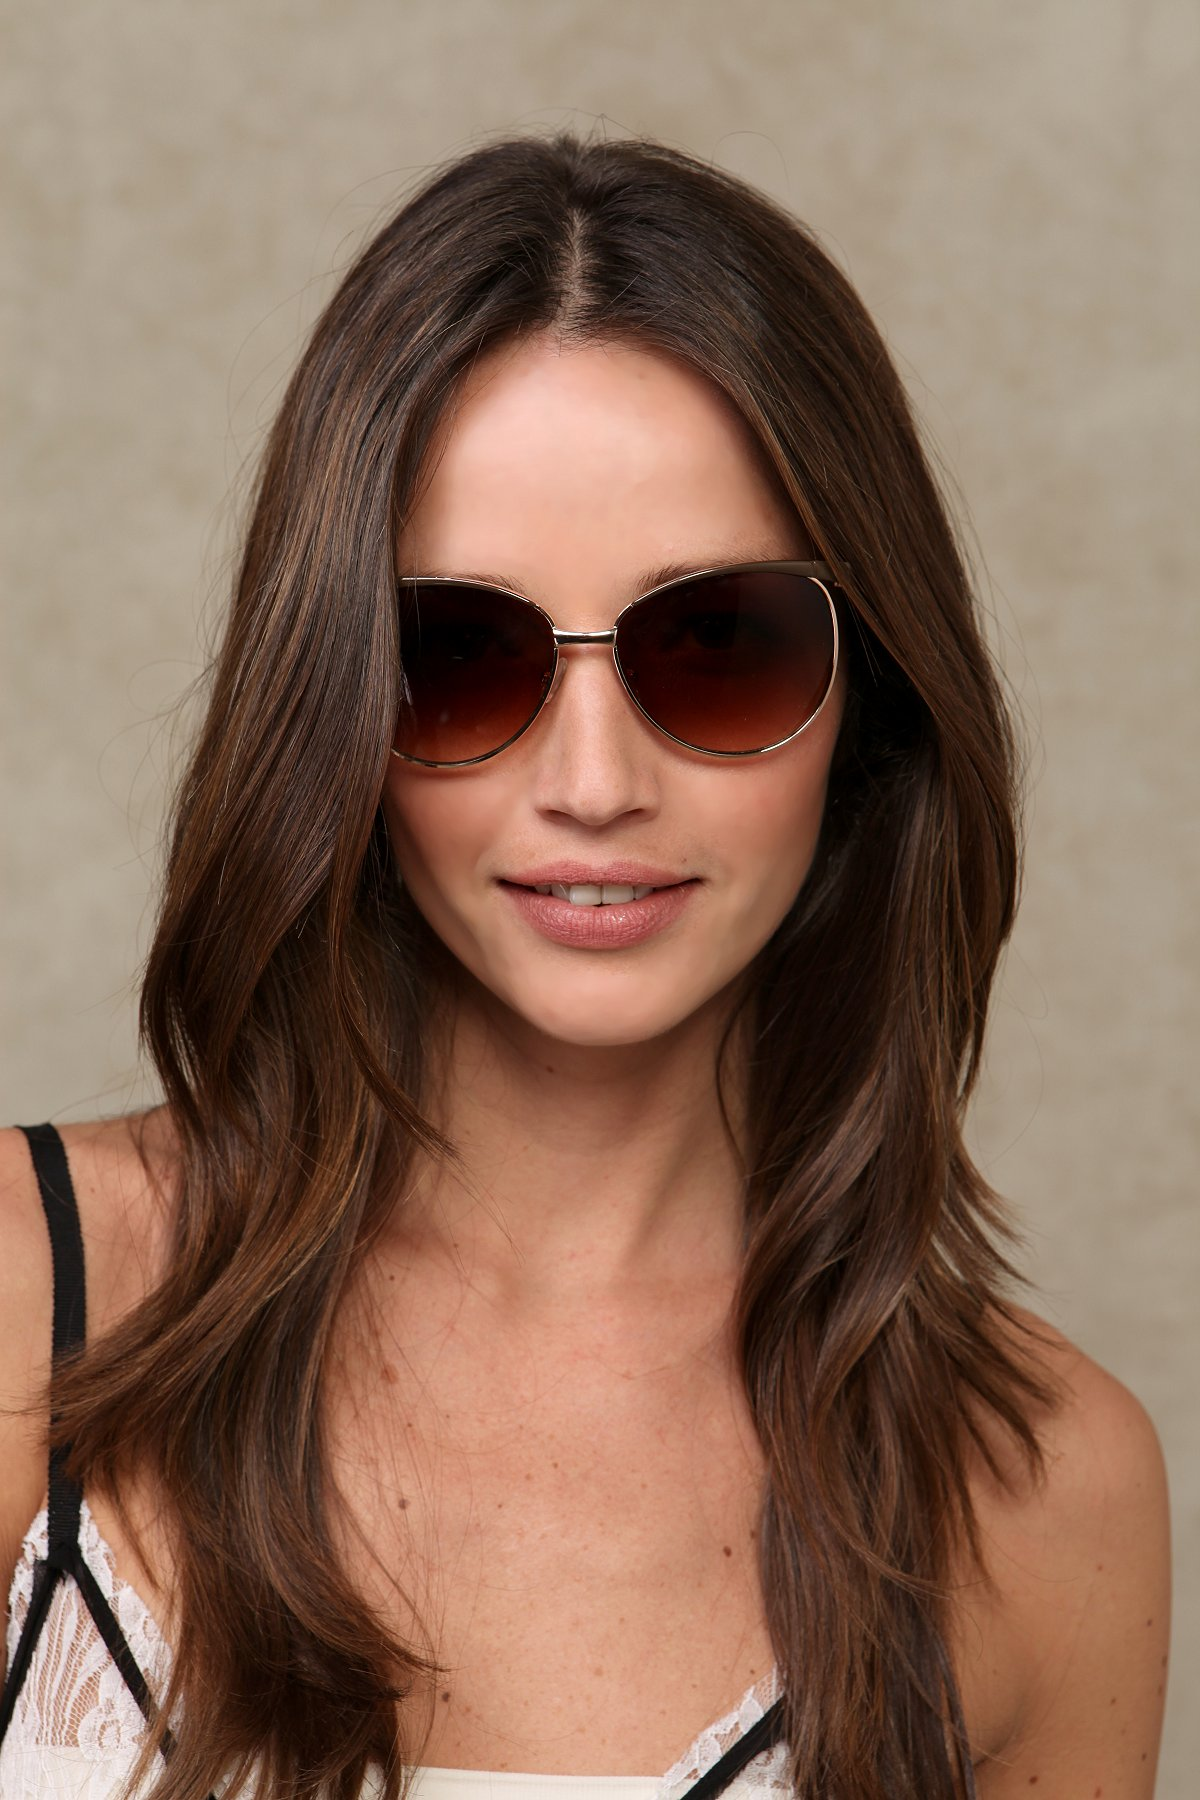 Cougar Sunglasses